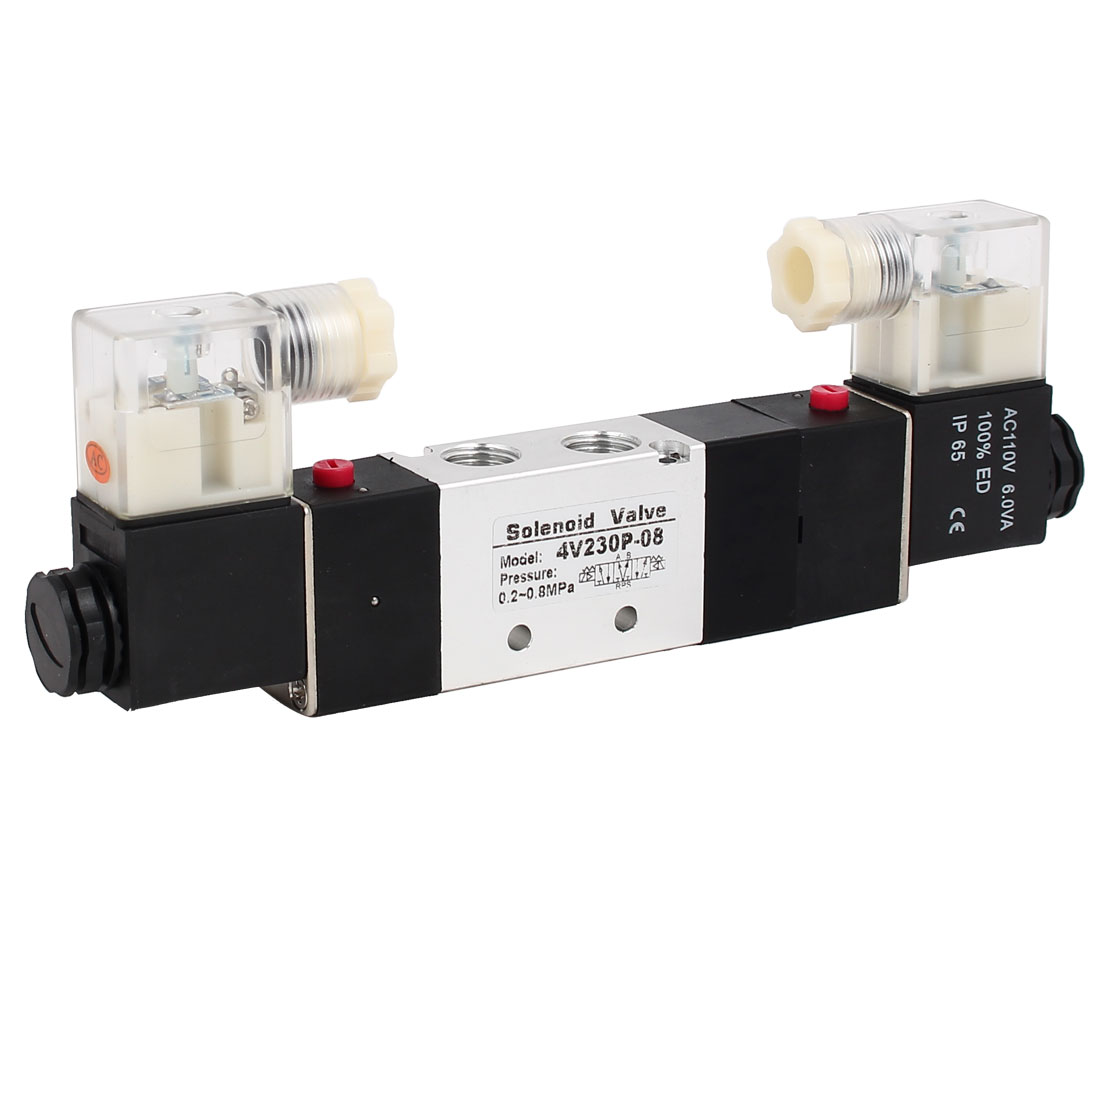 AC 110V 3 Position 5 Way Neutral Electric Solenoid Air Control Valve 4V230P-08